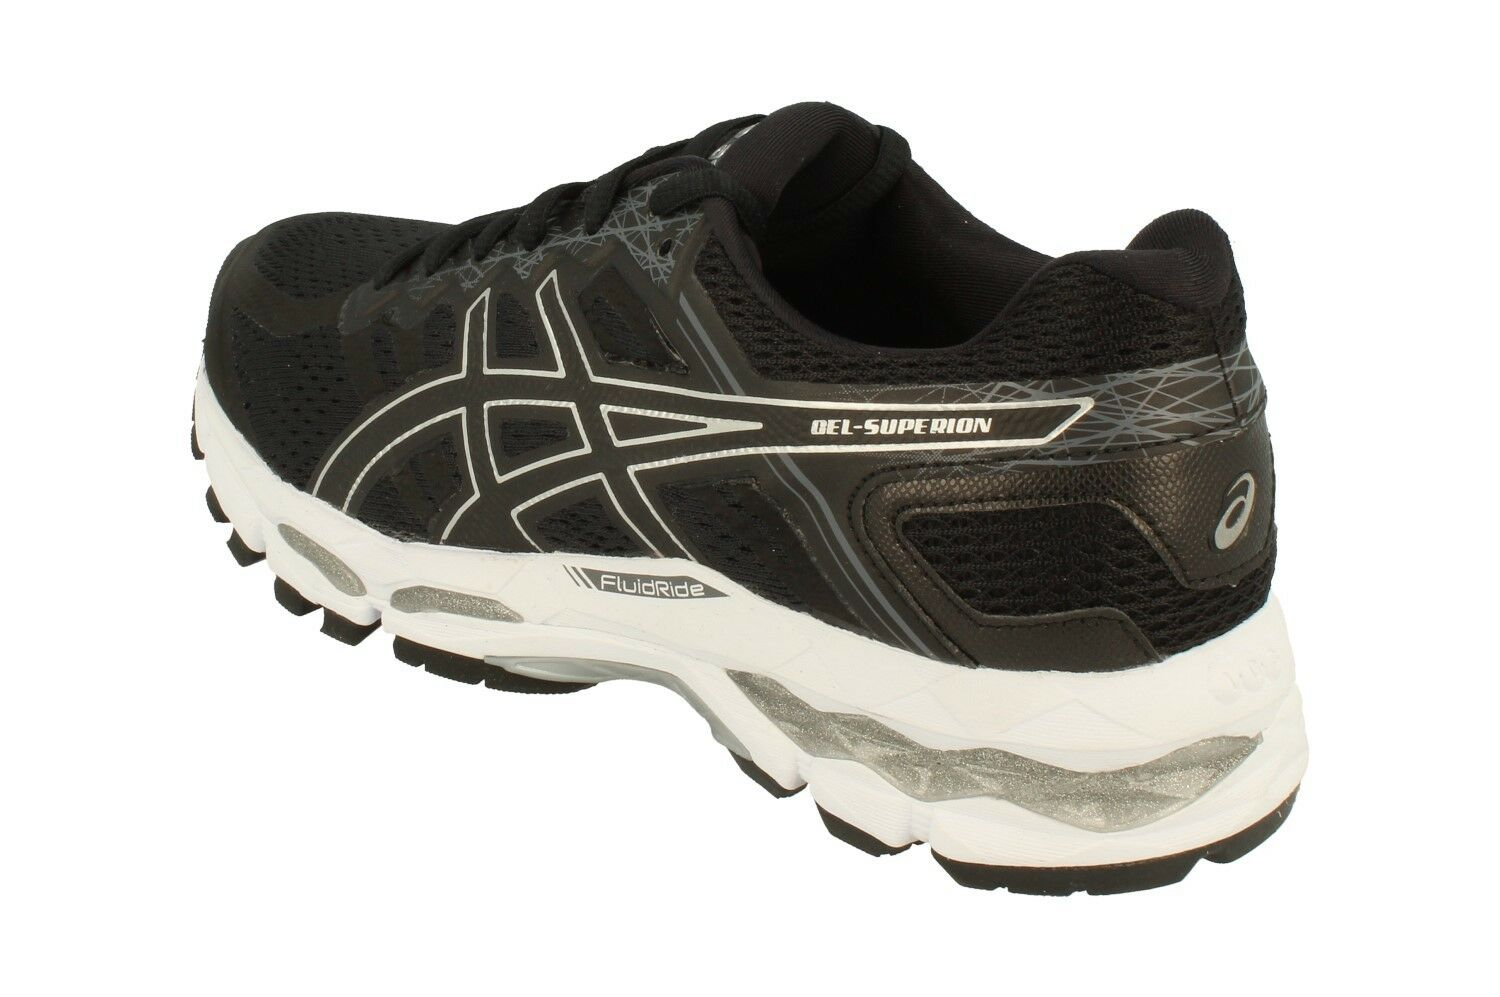 Asics Gel-Superion femmes Running Trainers Trainers Trainers T7H7N Baskets Chaussures 9090 cb37f3